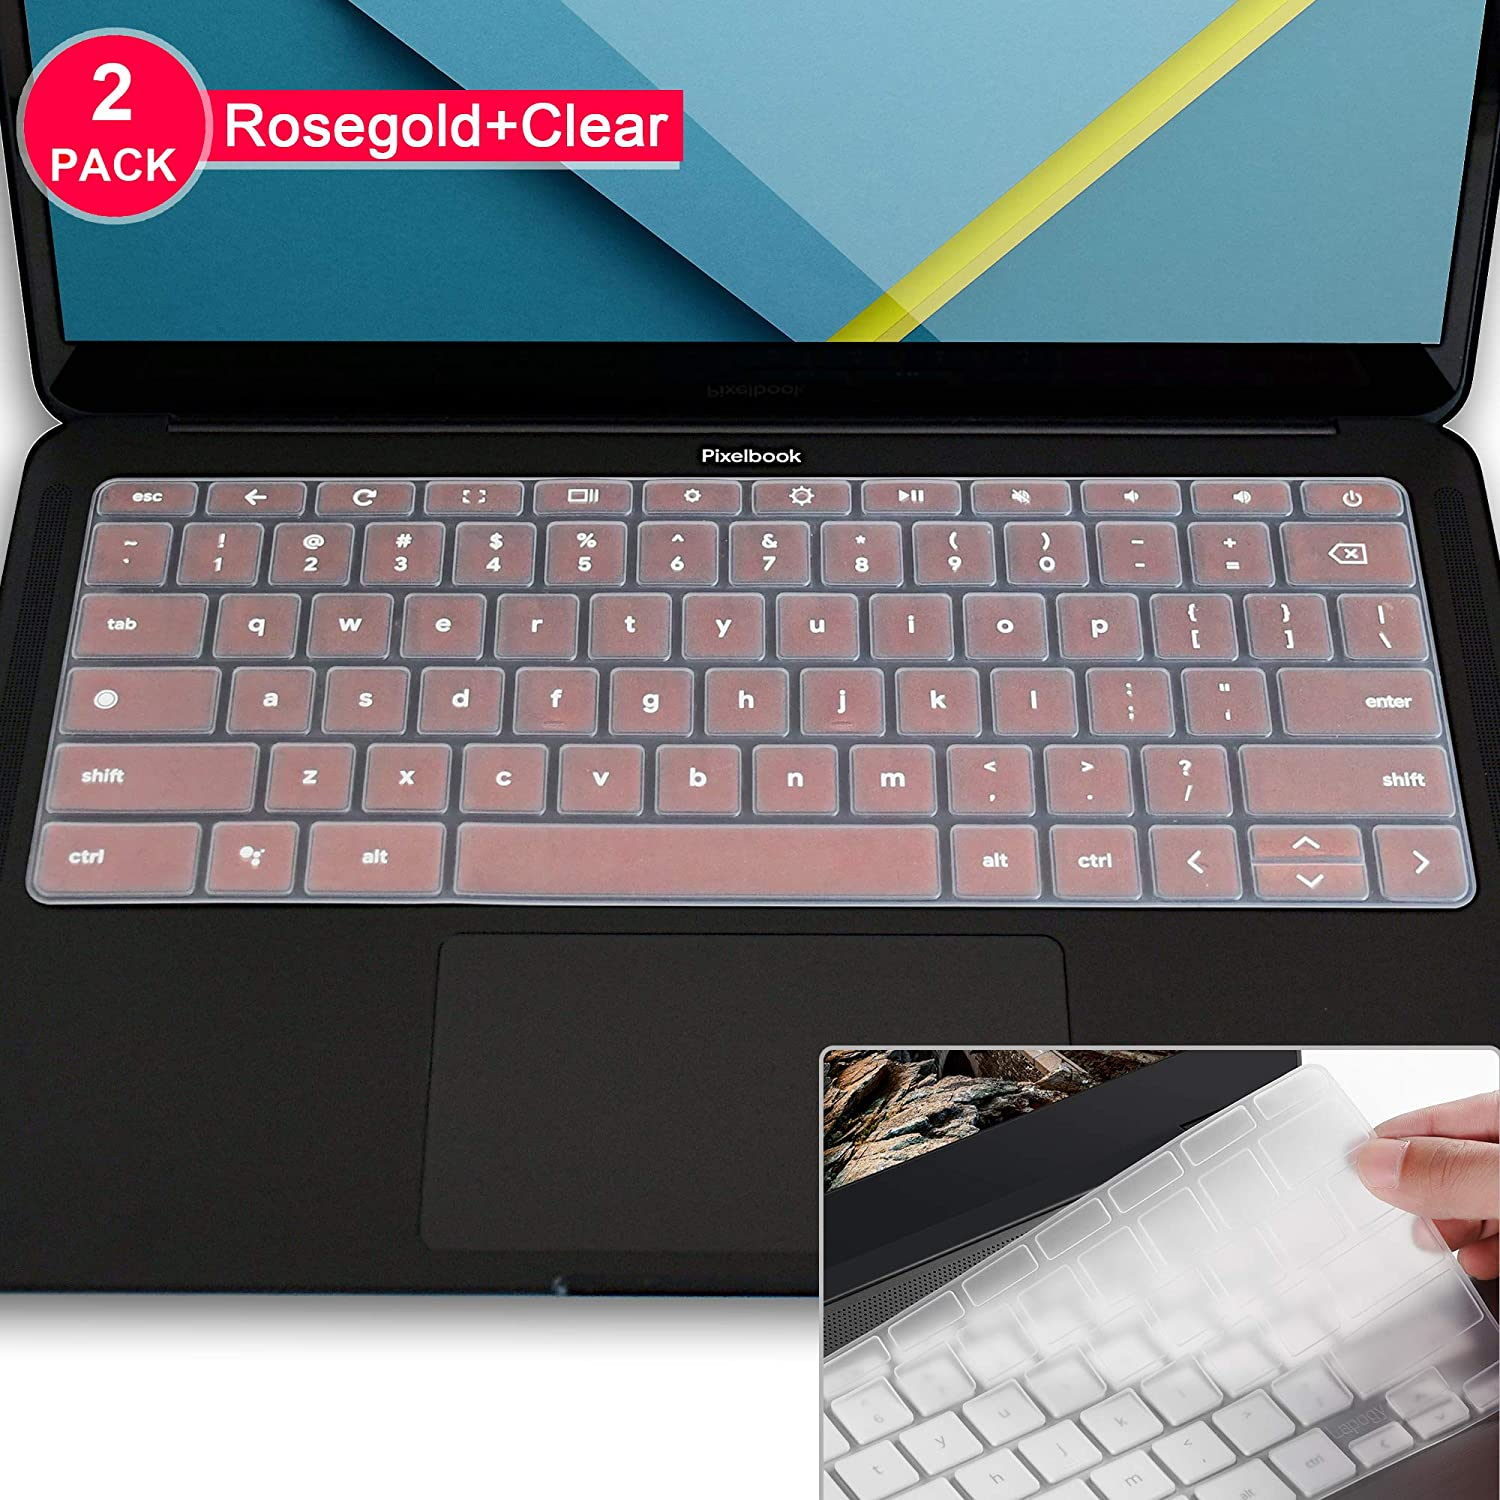 Lapogy Ultra Thin Keyboard Cover Skin Protector Compatible with 13.3 inch Google Pixelbook go,Pixelbook go Accessories(Rosegold+Clear)